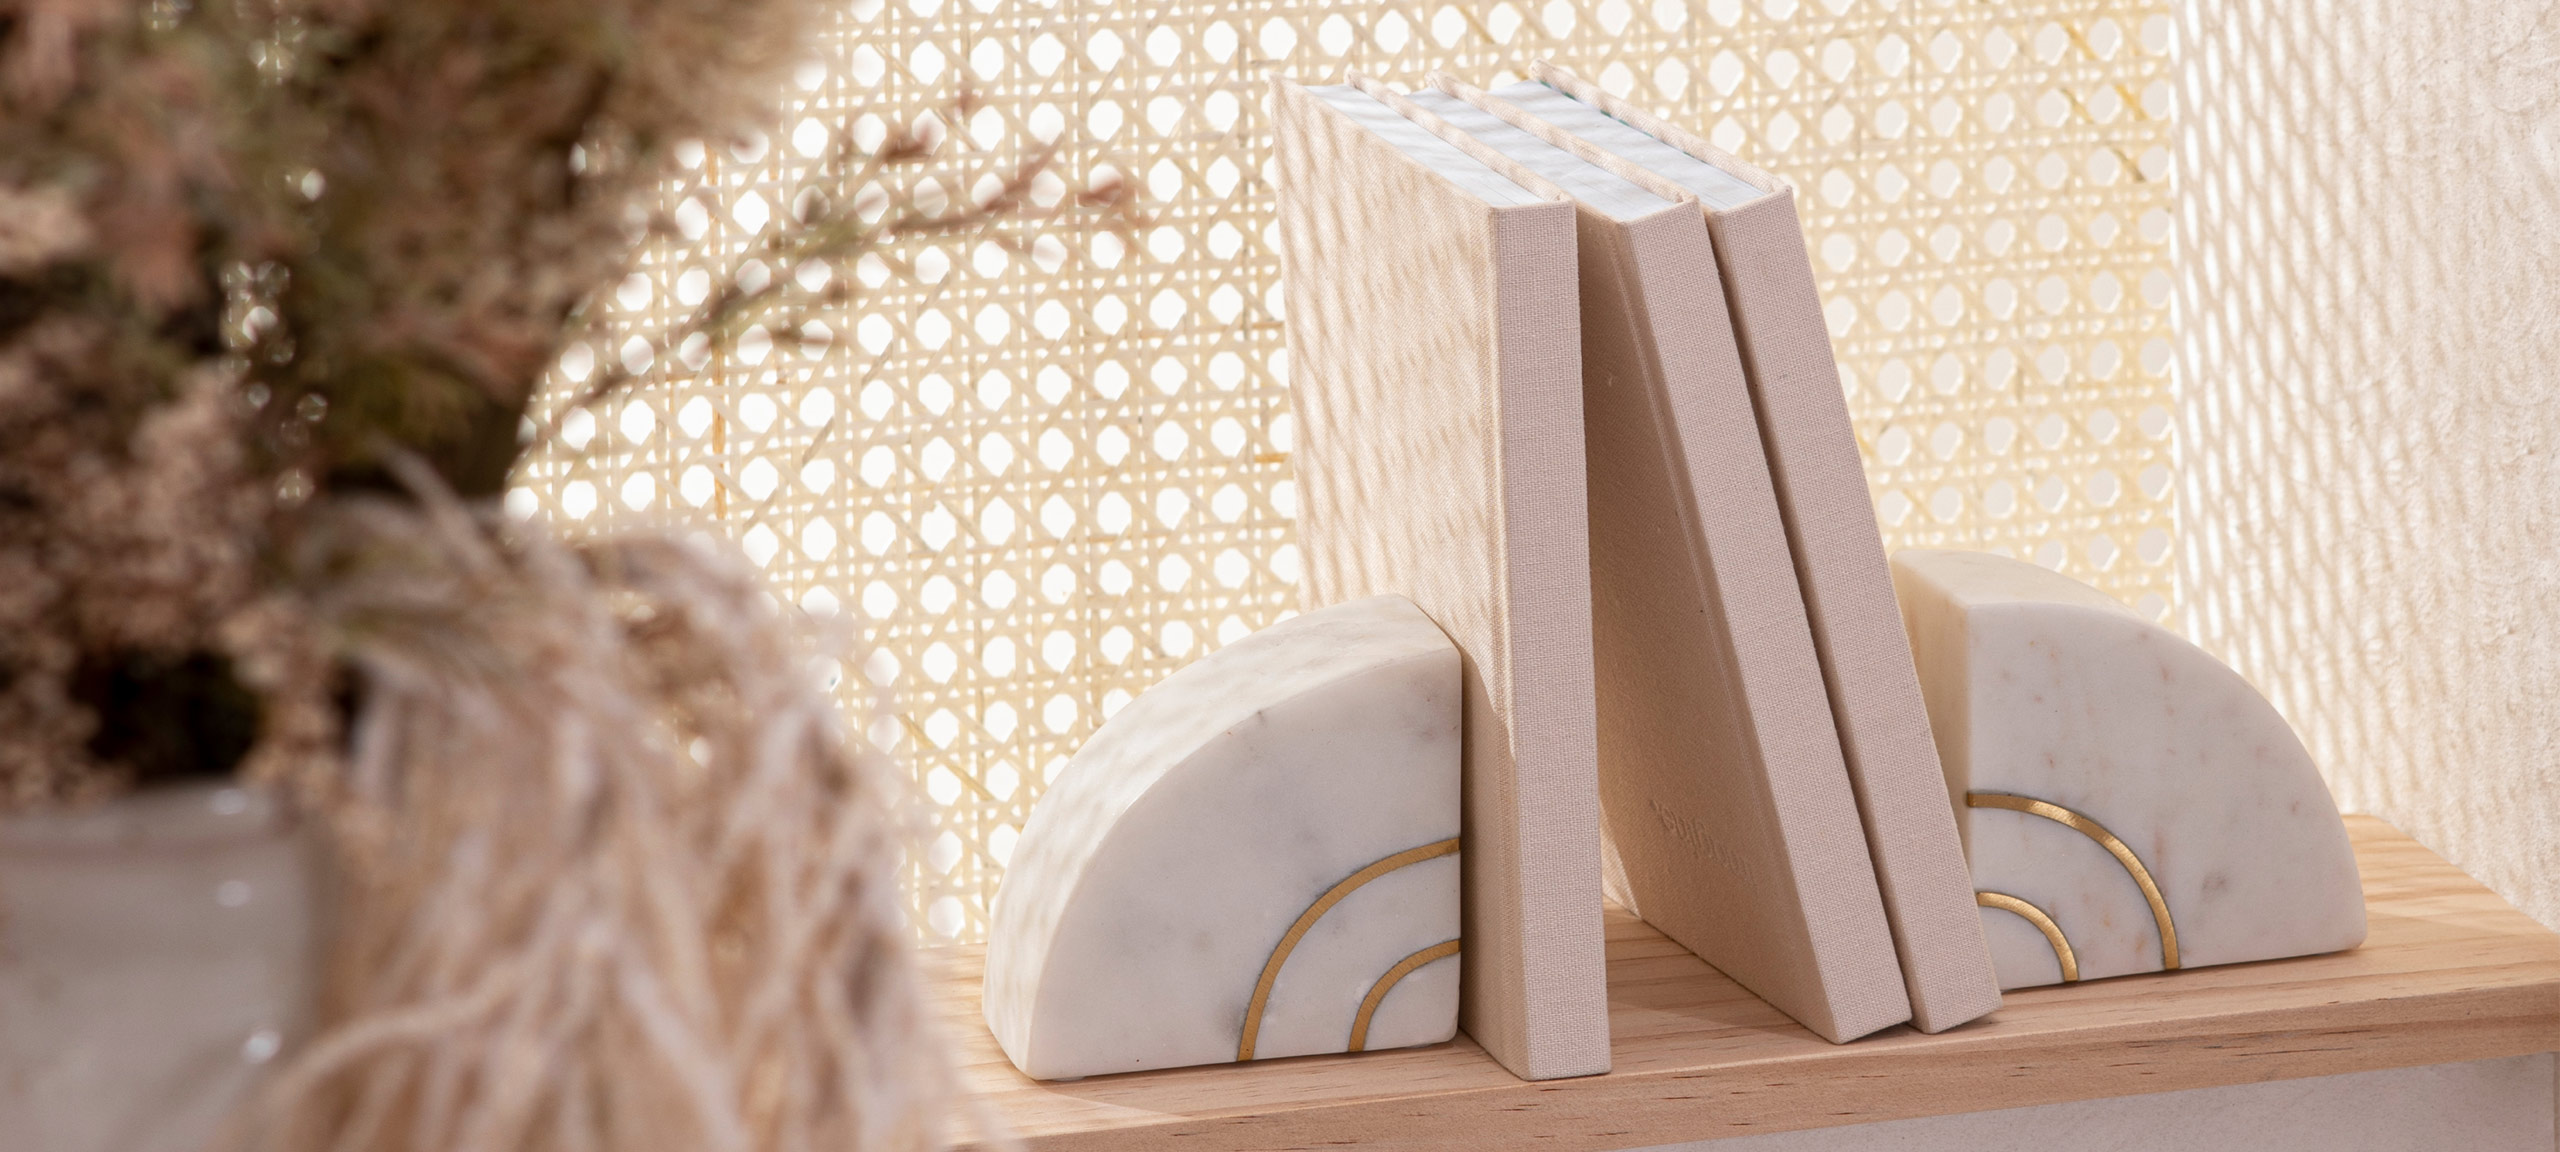 2 marble bookends featuring gold detailing